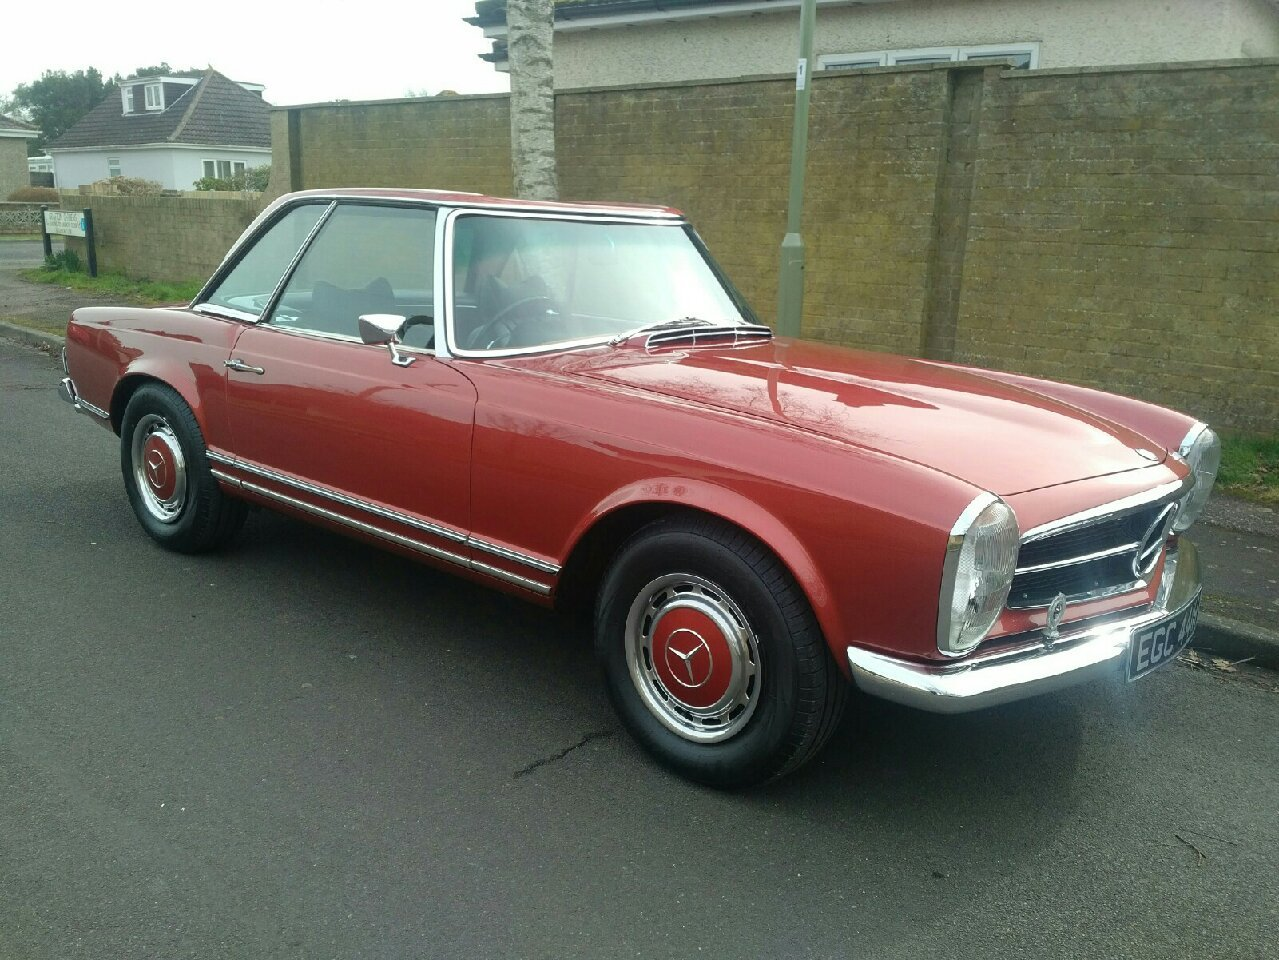 1968 Wanted Wanted Wanted 280 SL Pagoda For Sale (picture 1 of 1)